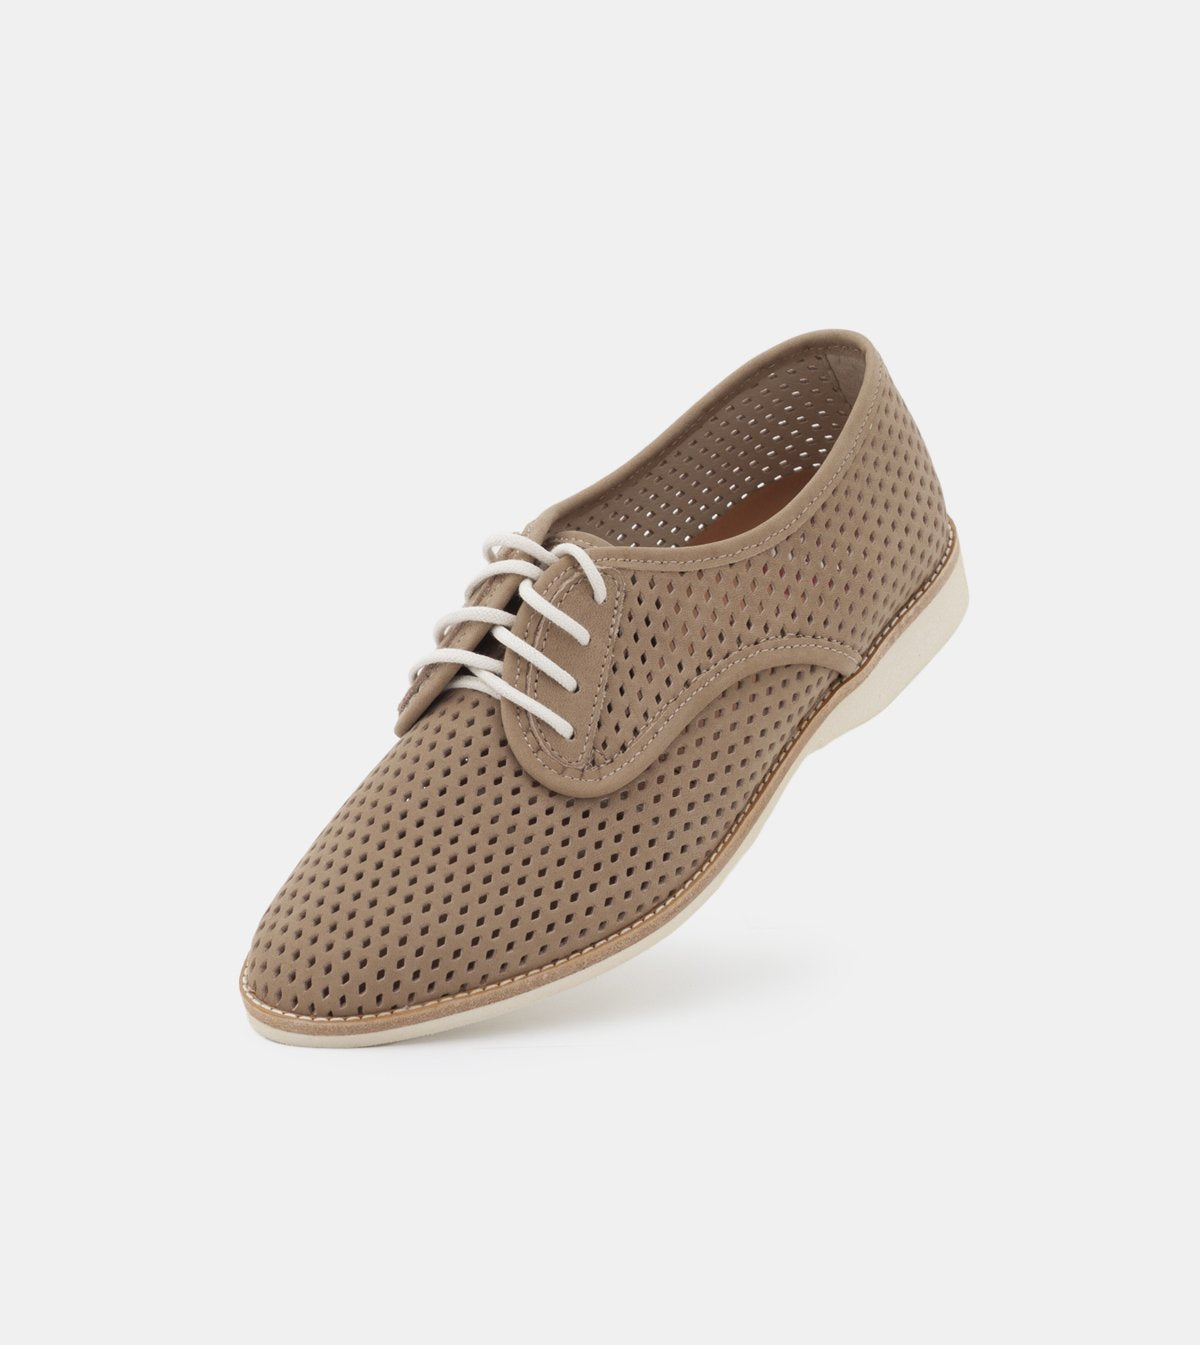 Rollie Derby Punch Sand Shoes